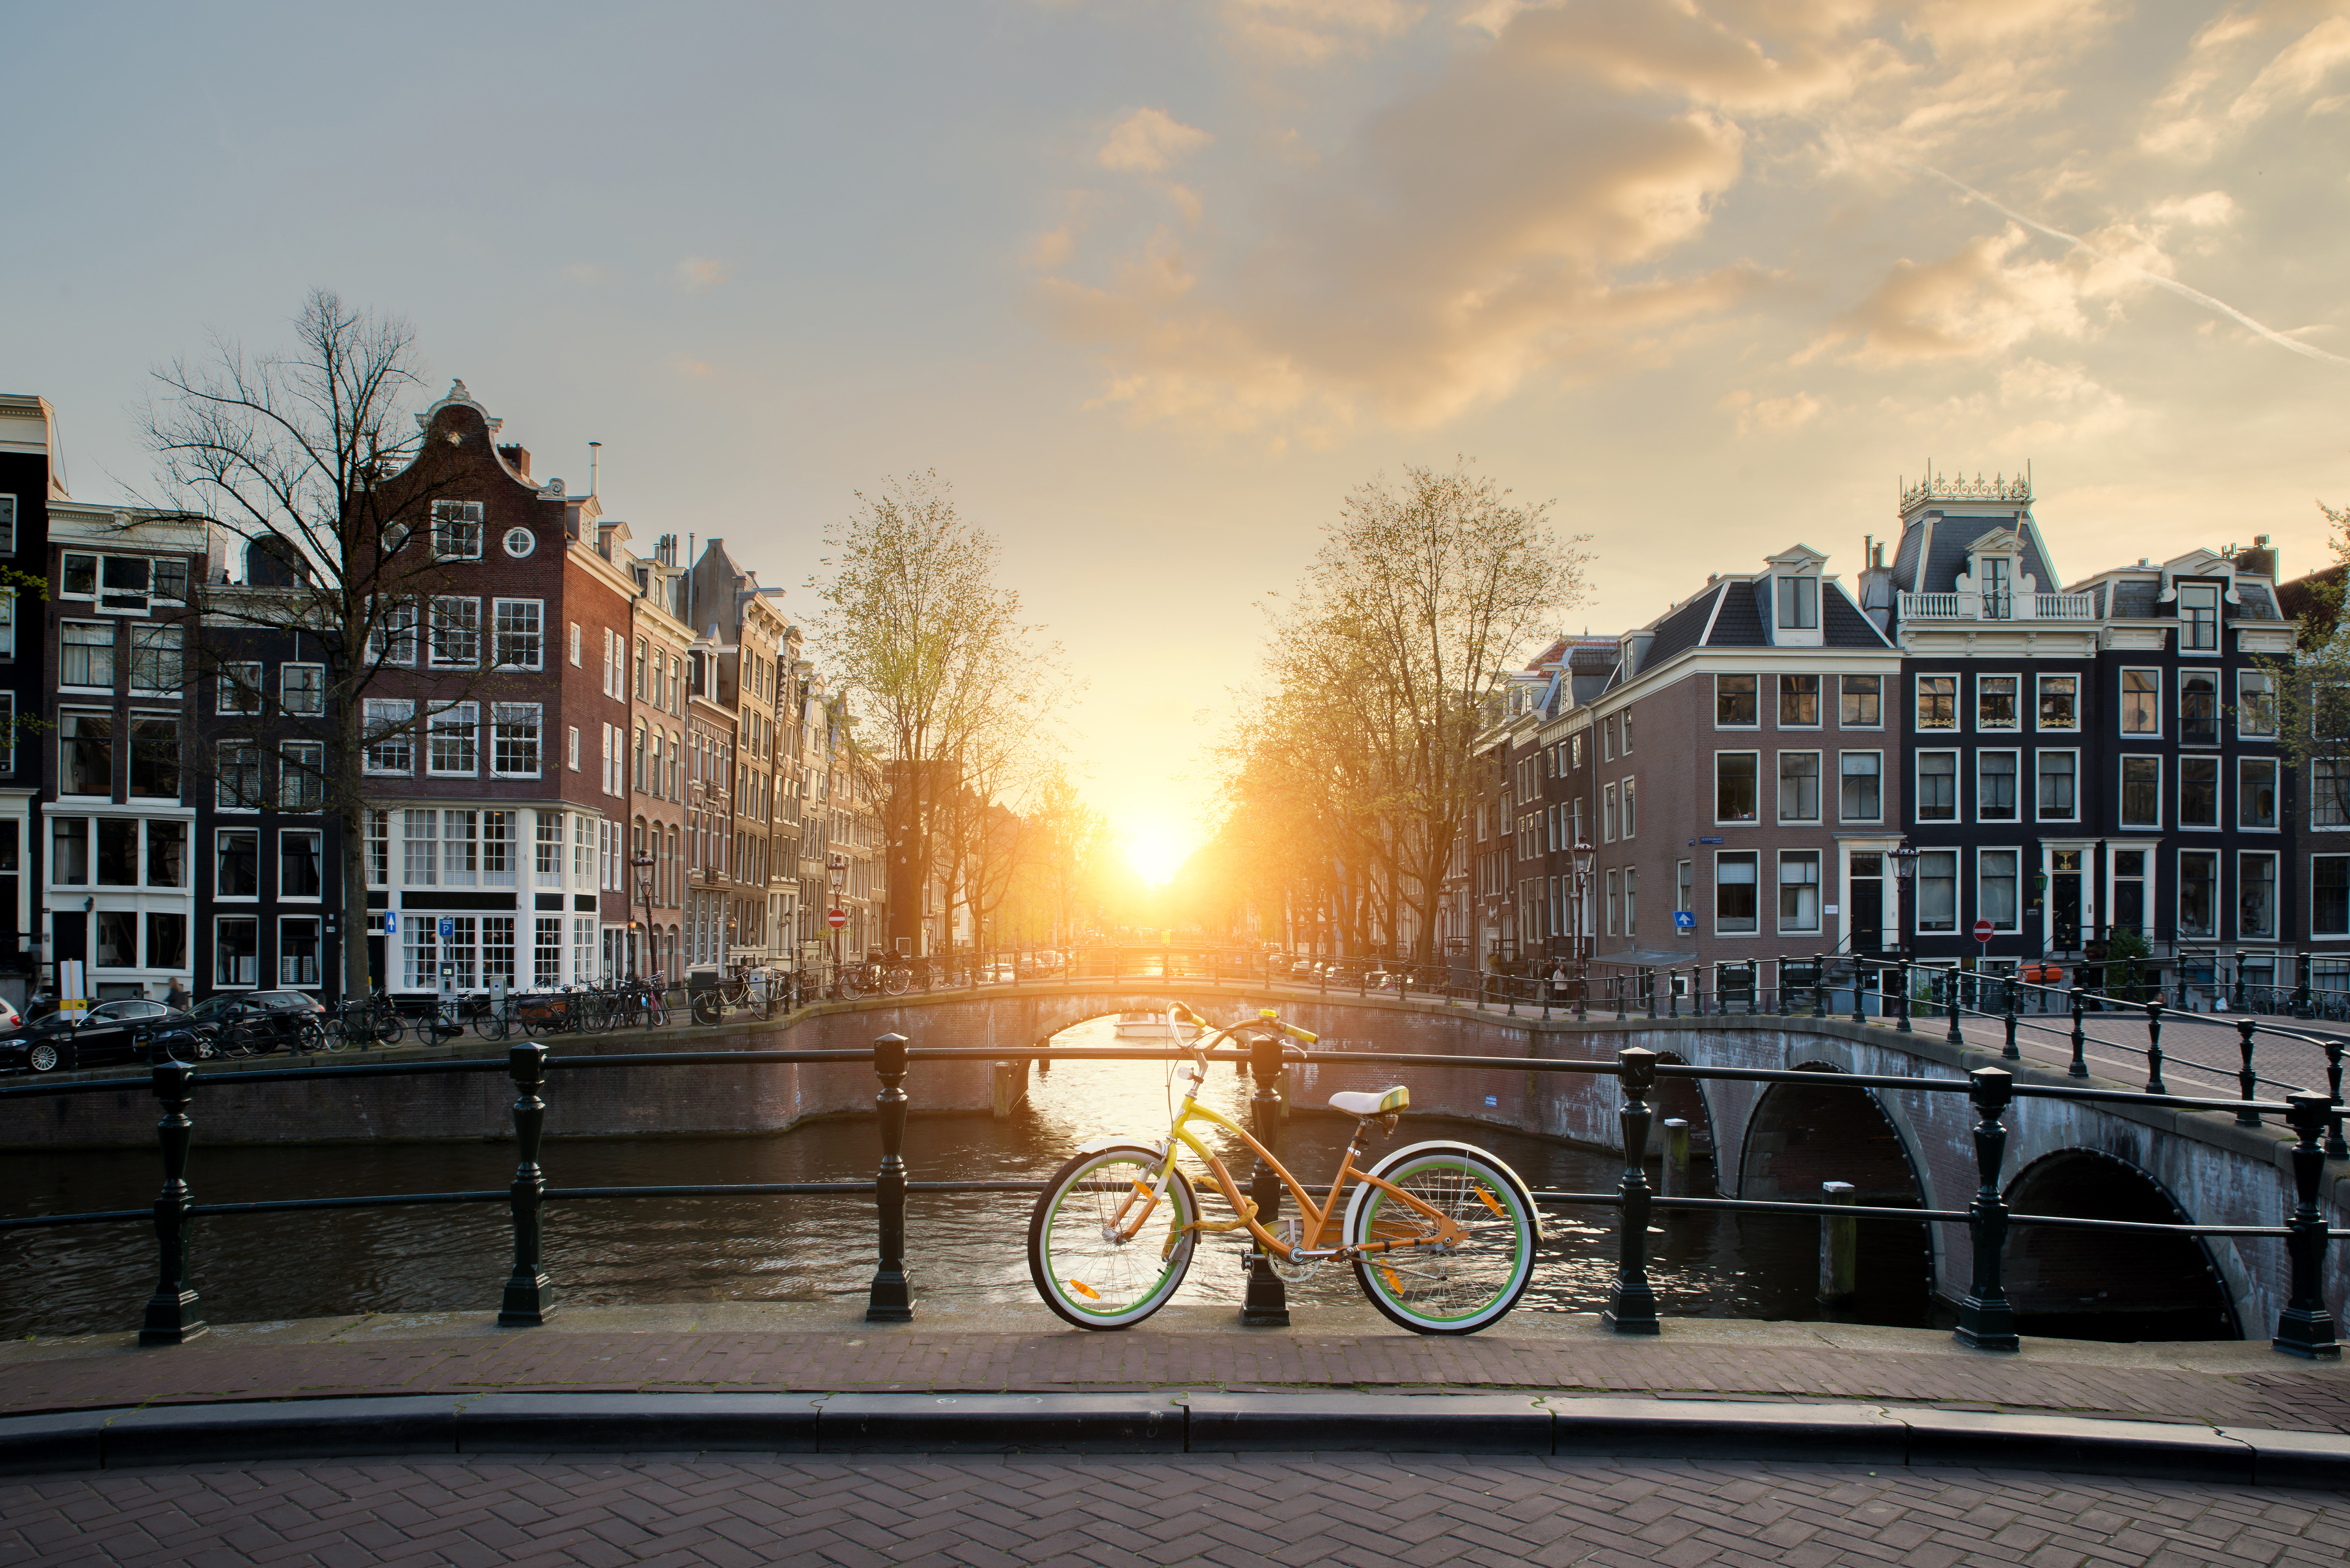 Bicycles lining a bridge over the canals of Amsterdam, Netherlands. Bicycle is major form of transportation in Amsterdam, Netherlands